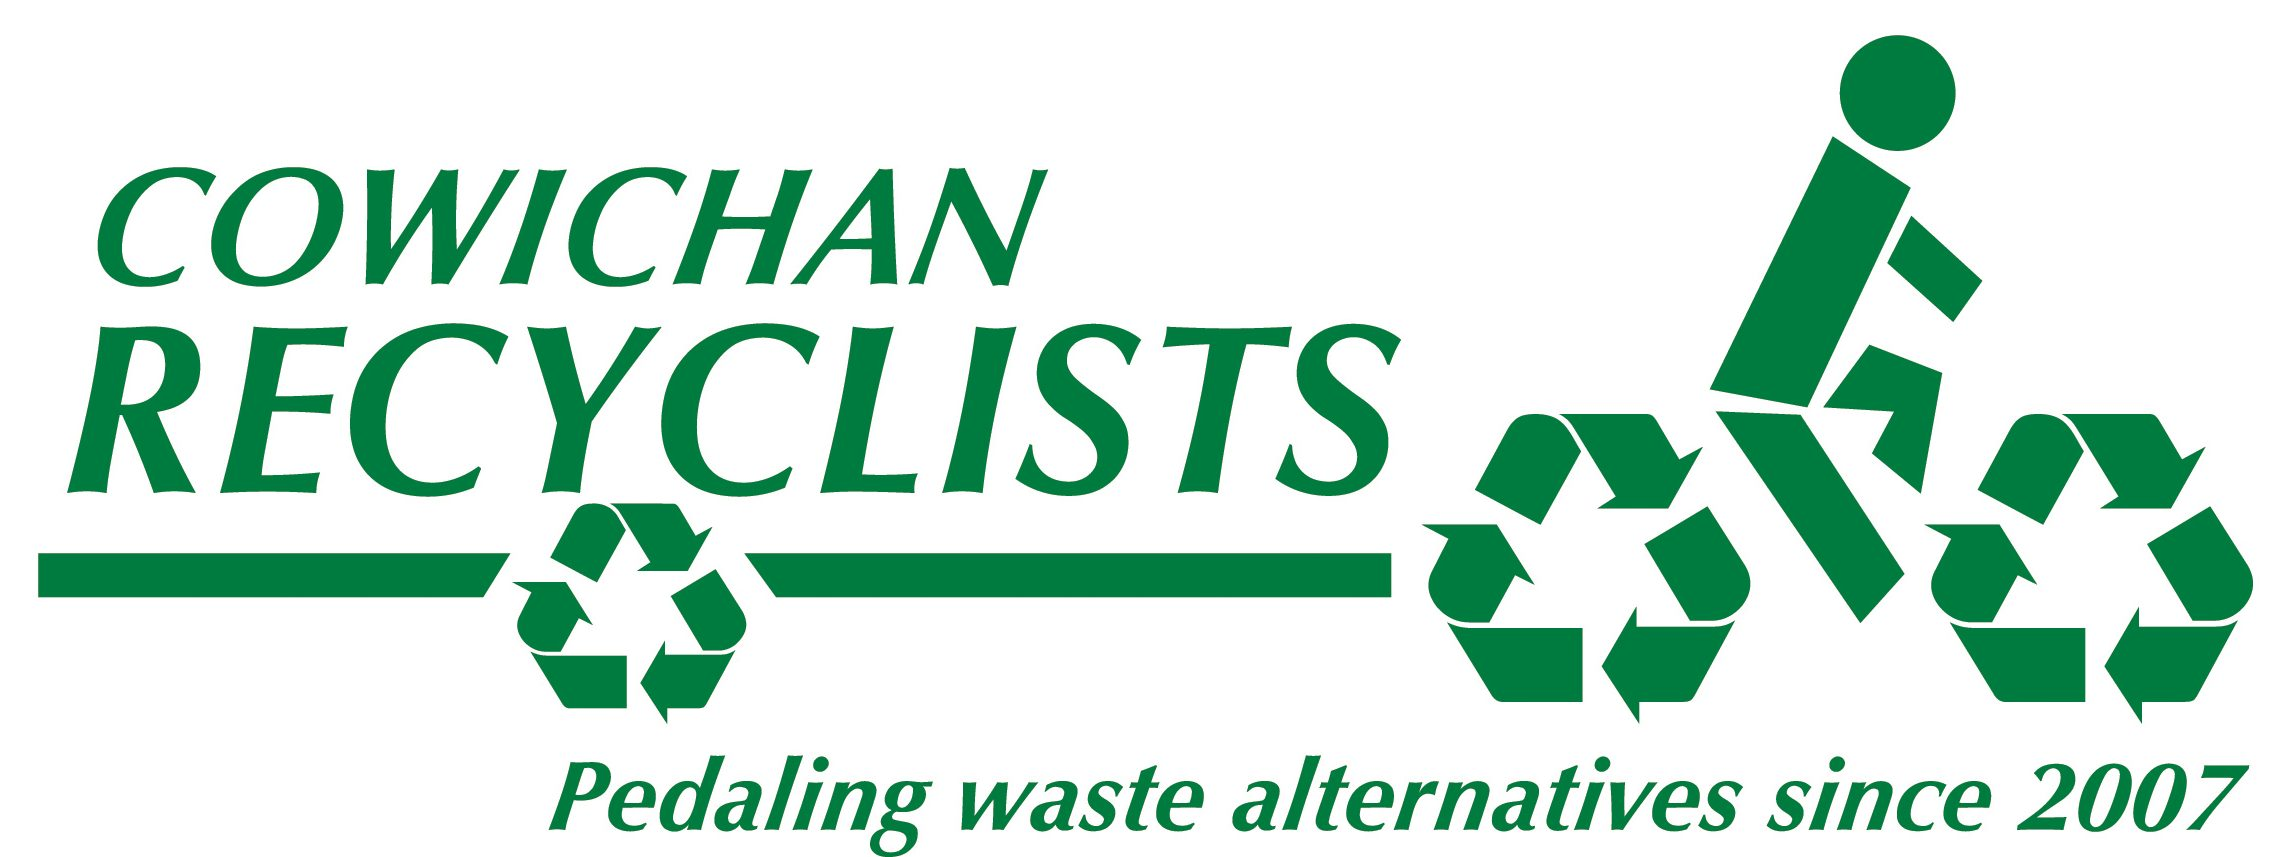 Cowichan Recyclists